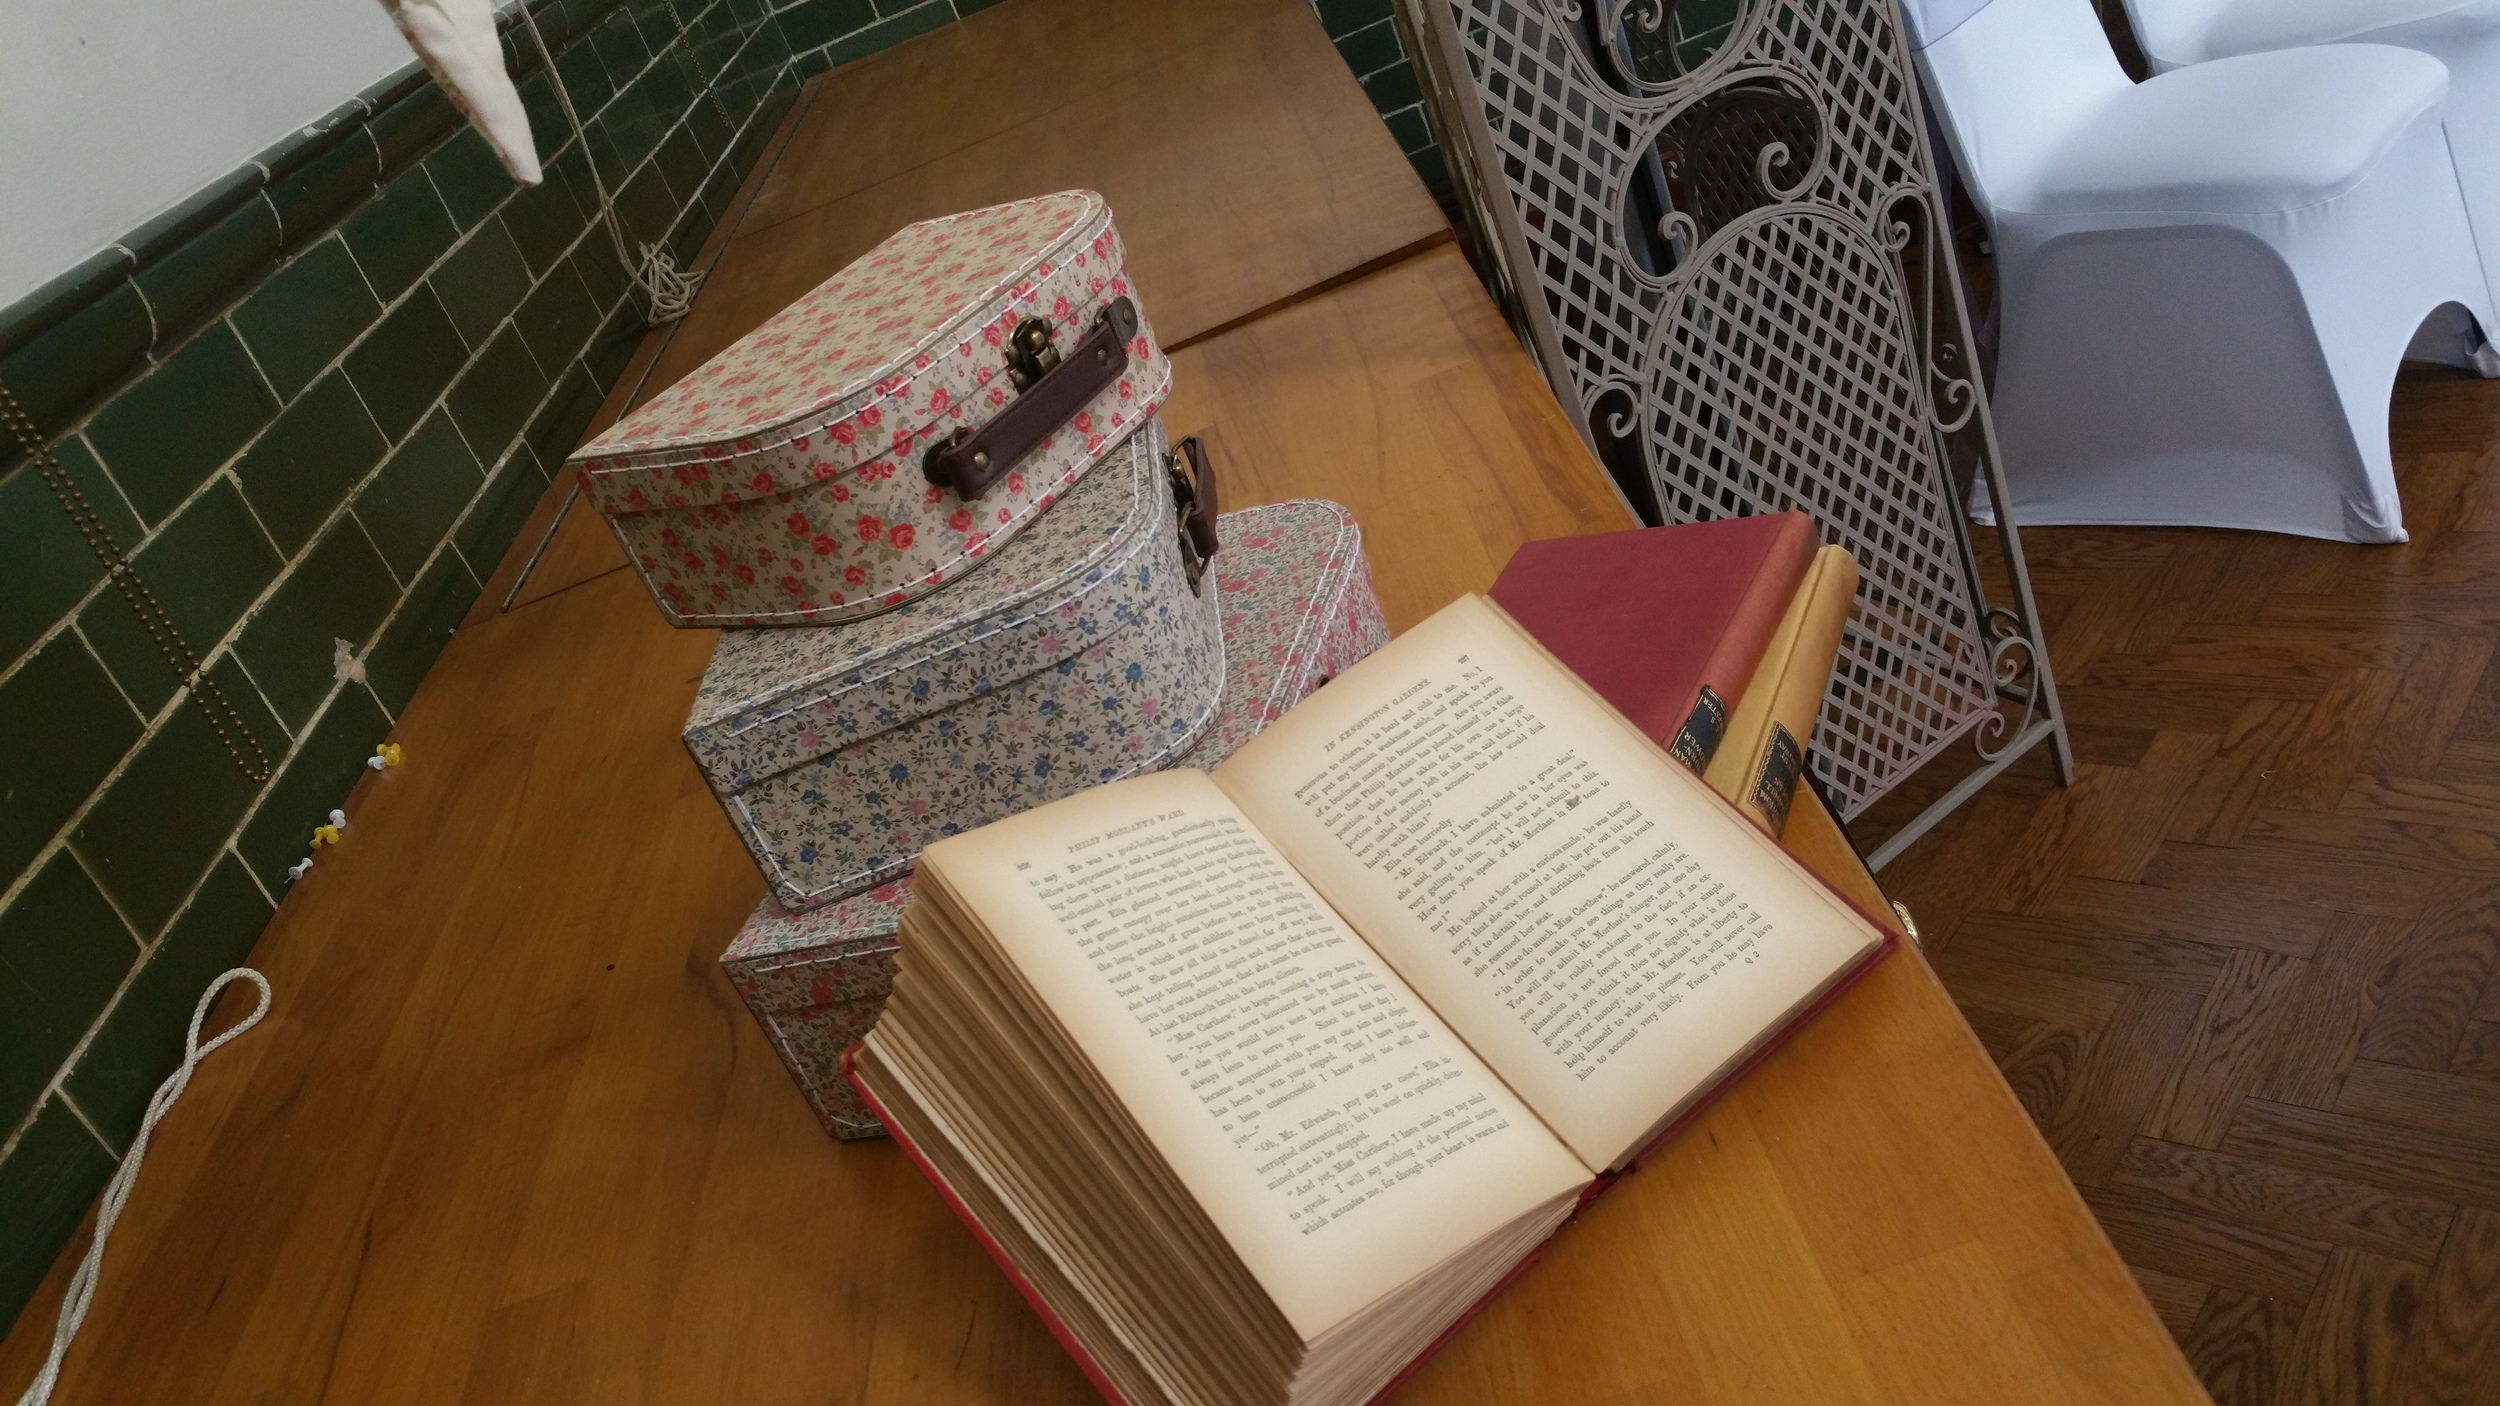 floral suitcases and vintage books add extra detail around the room